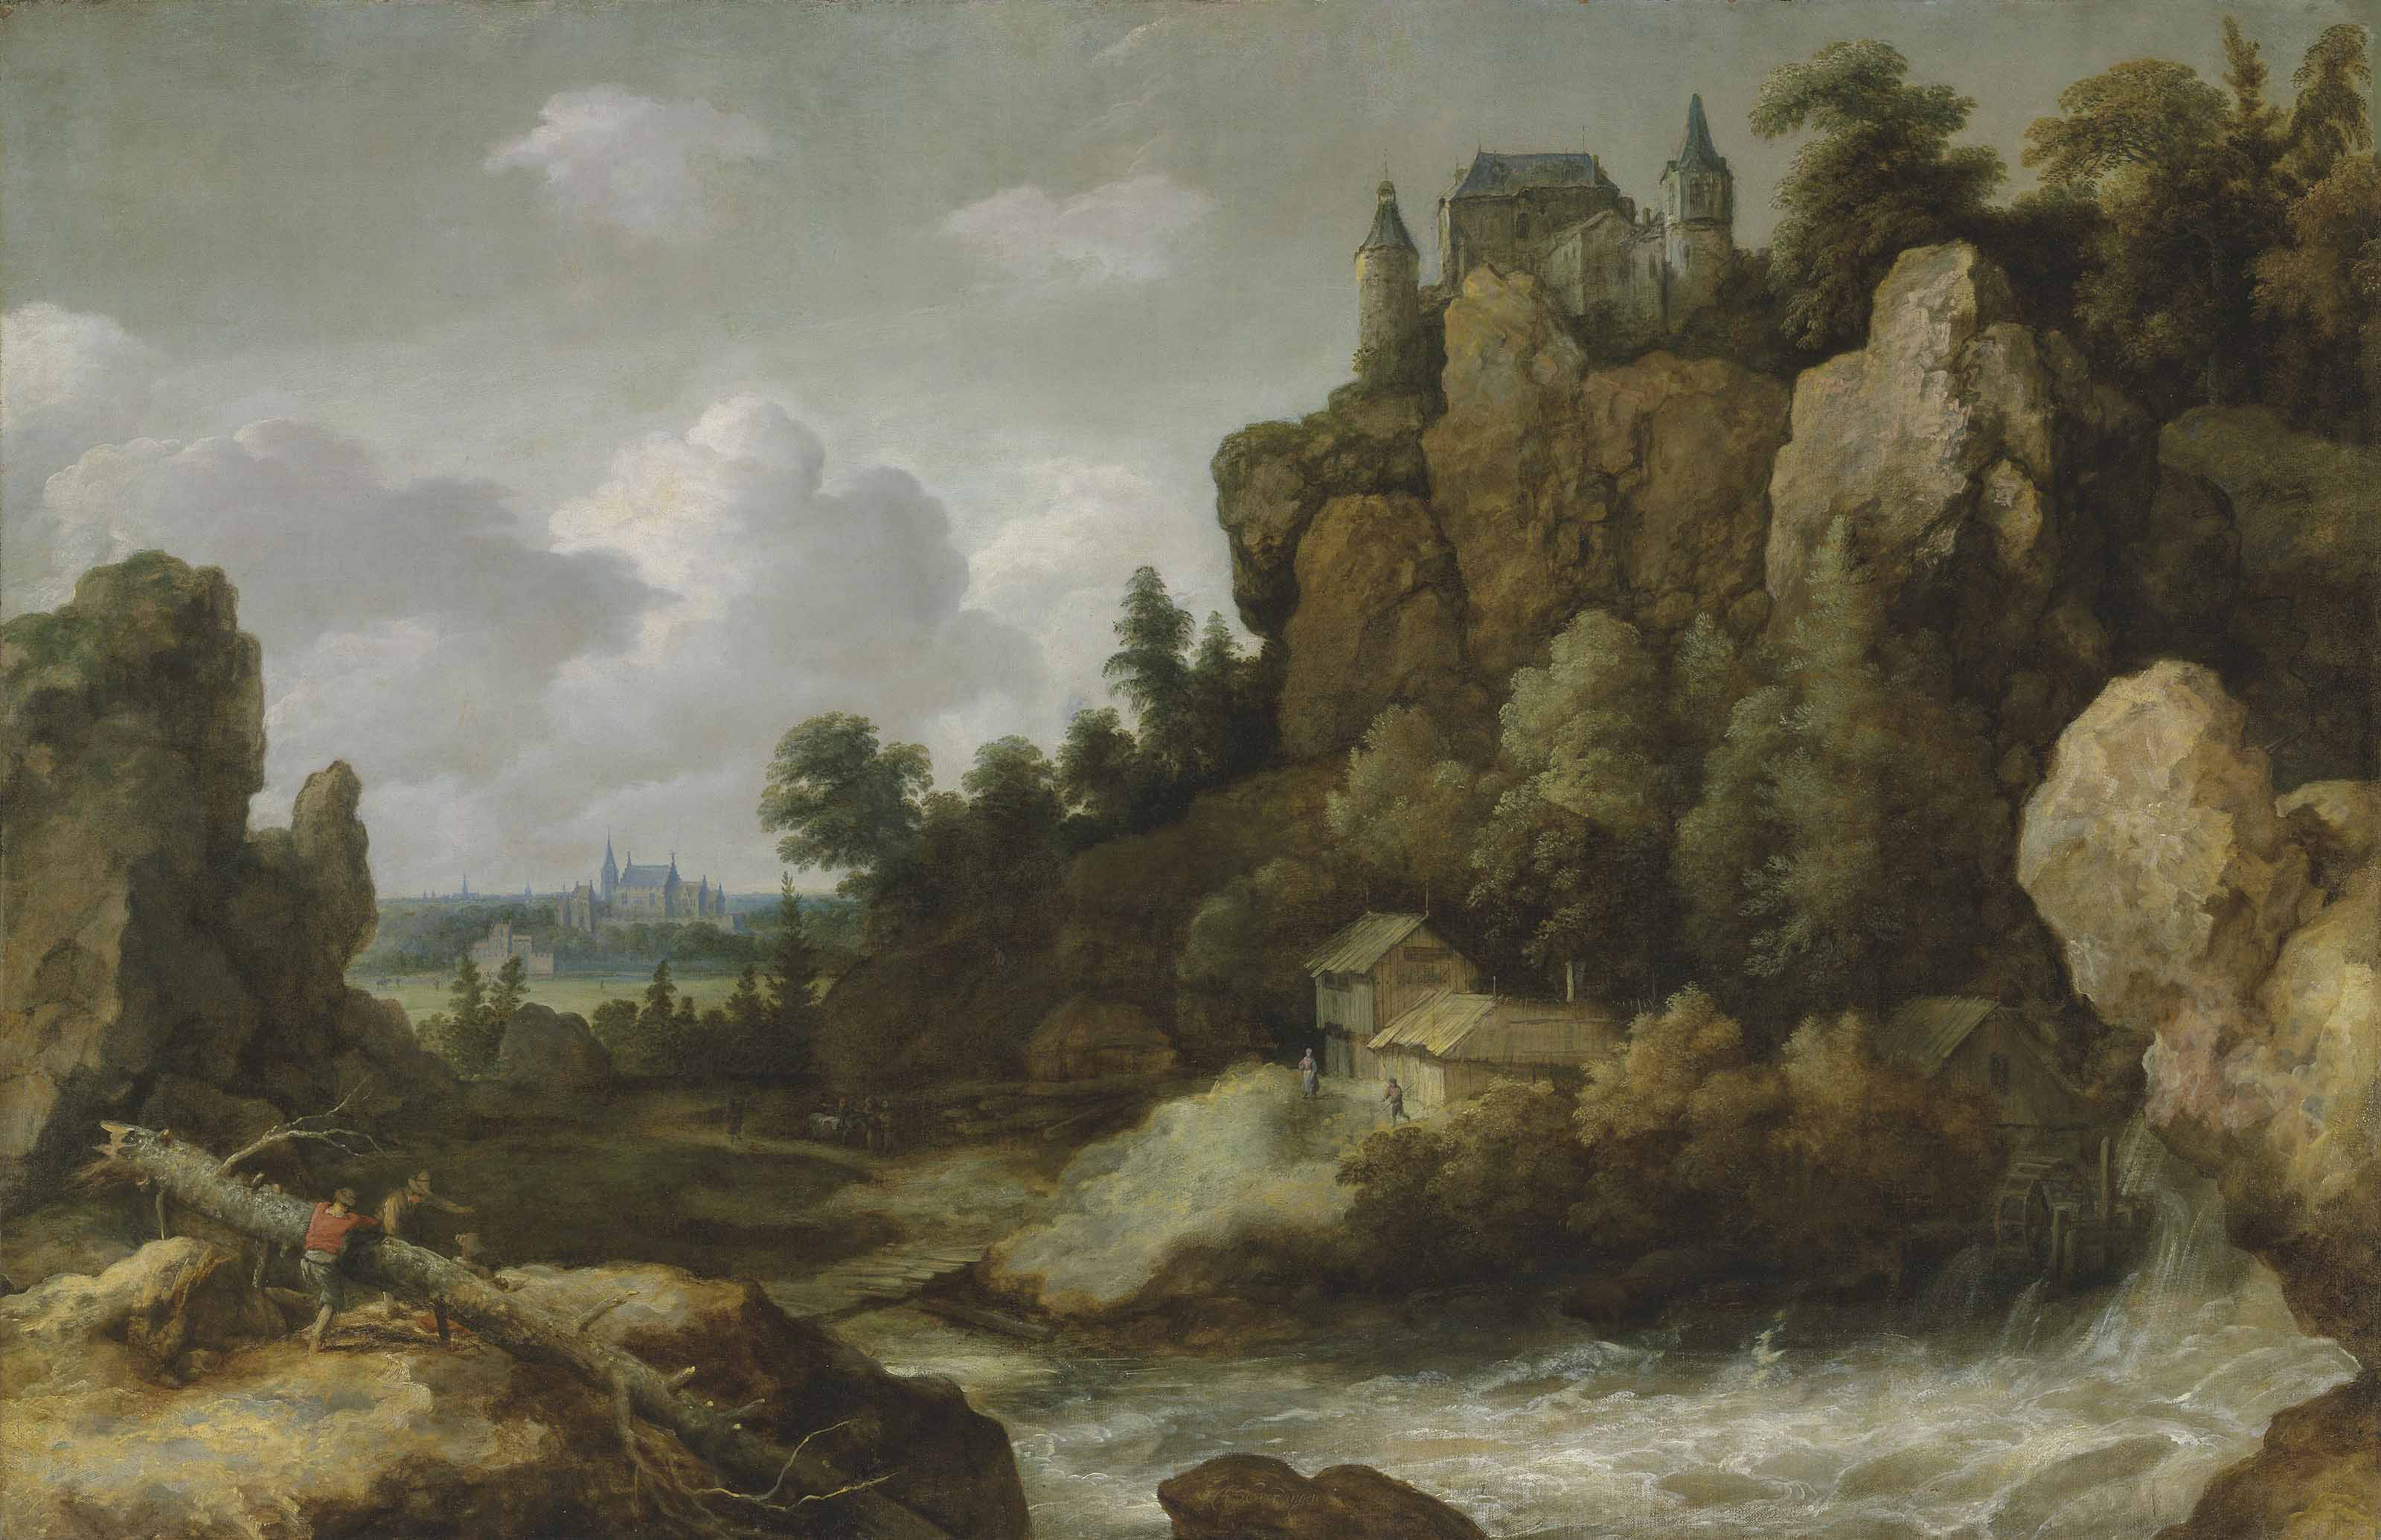 An extensive landscape with a waterfall, with a hilltop castle and a village beyond